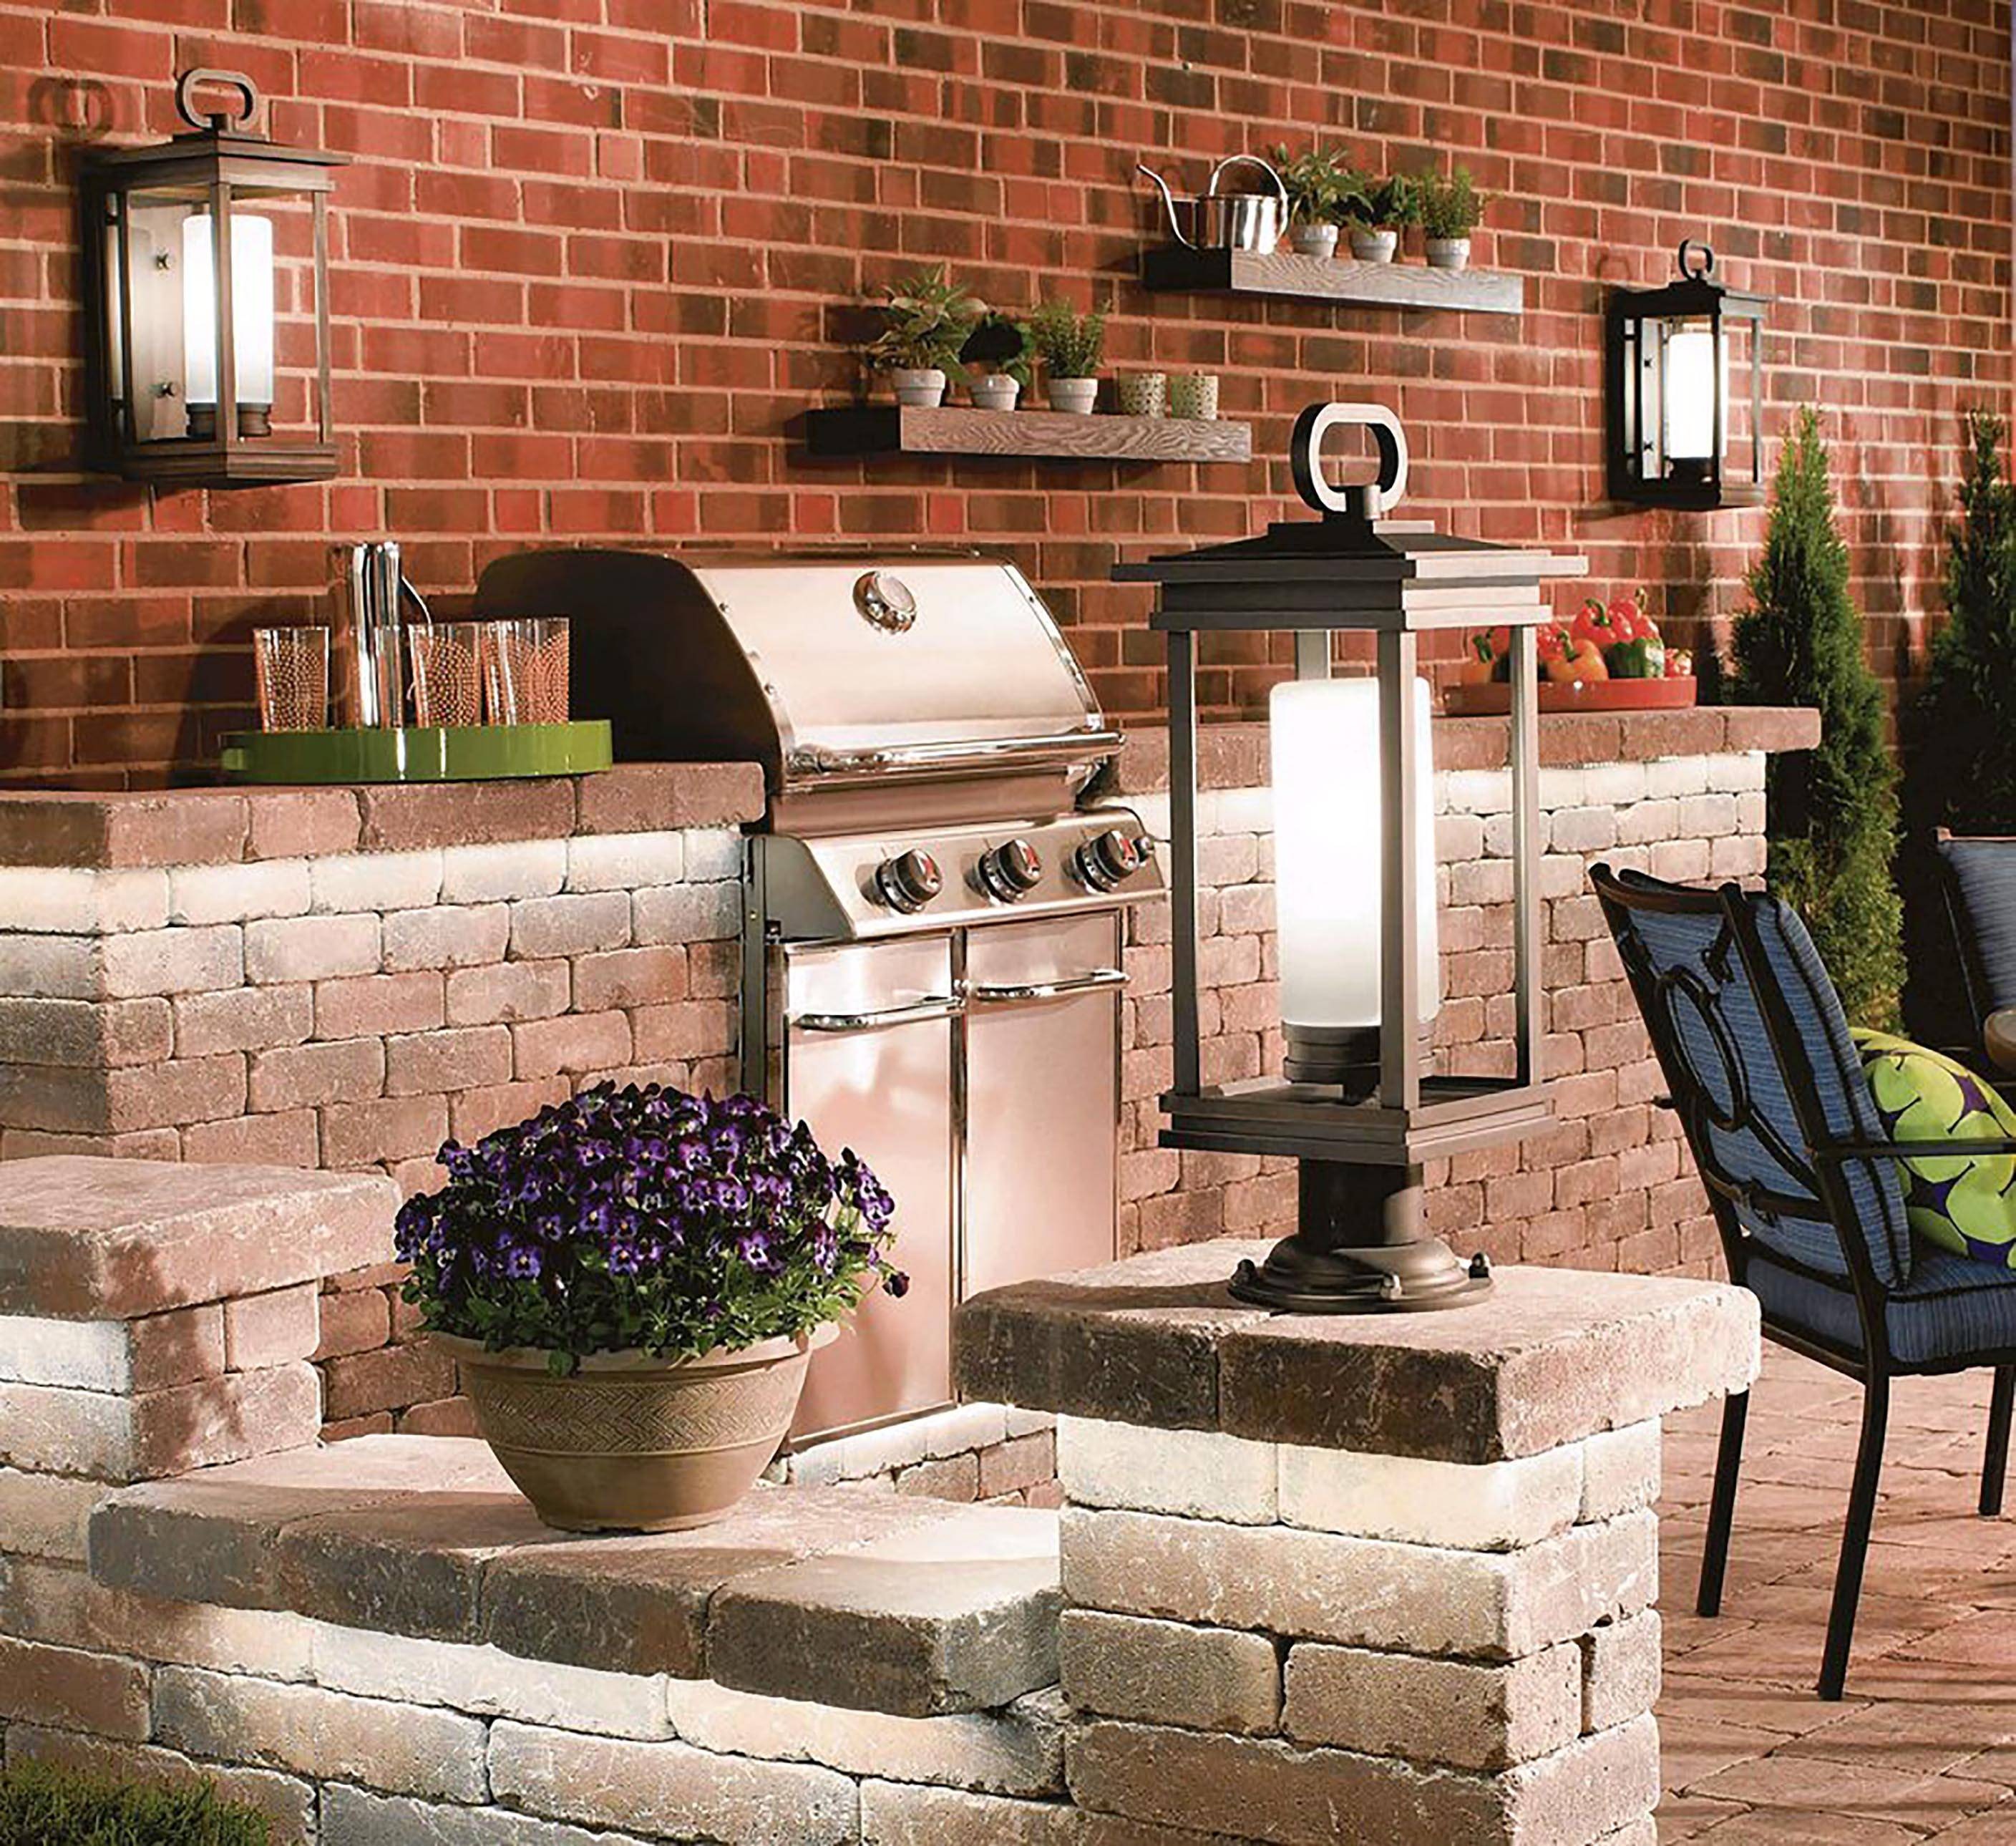 The right lighting can help you enjoy your outdoor living area well into the evening.